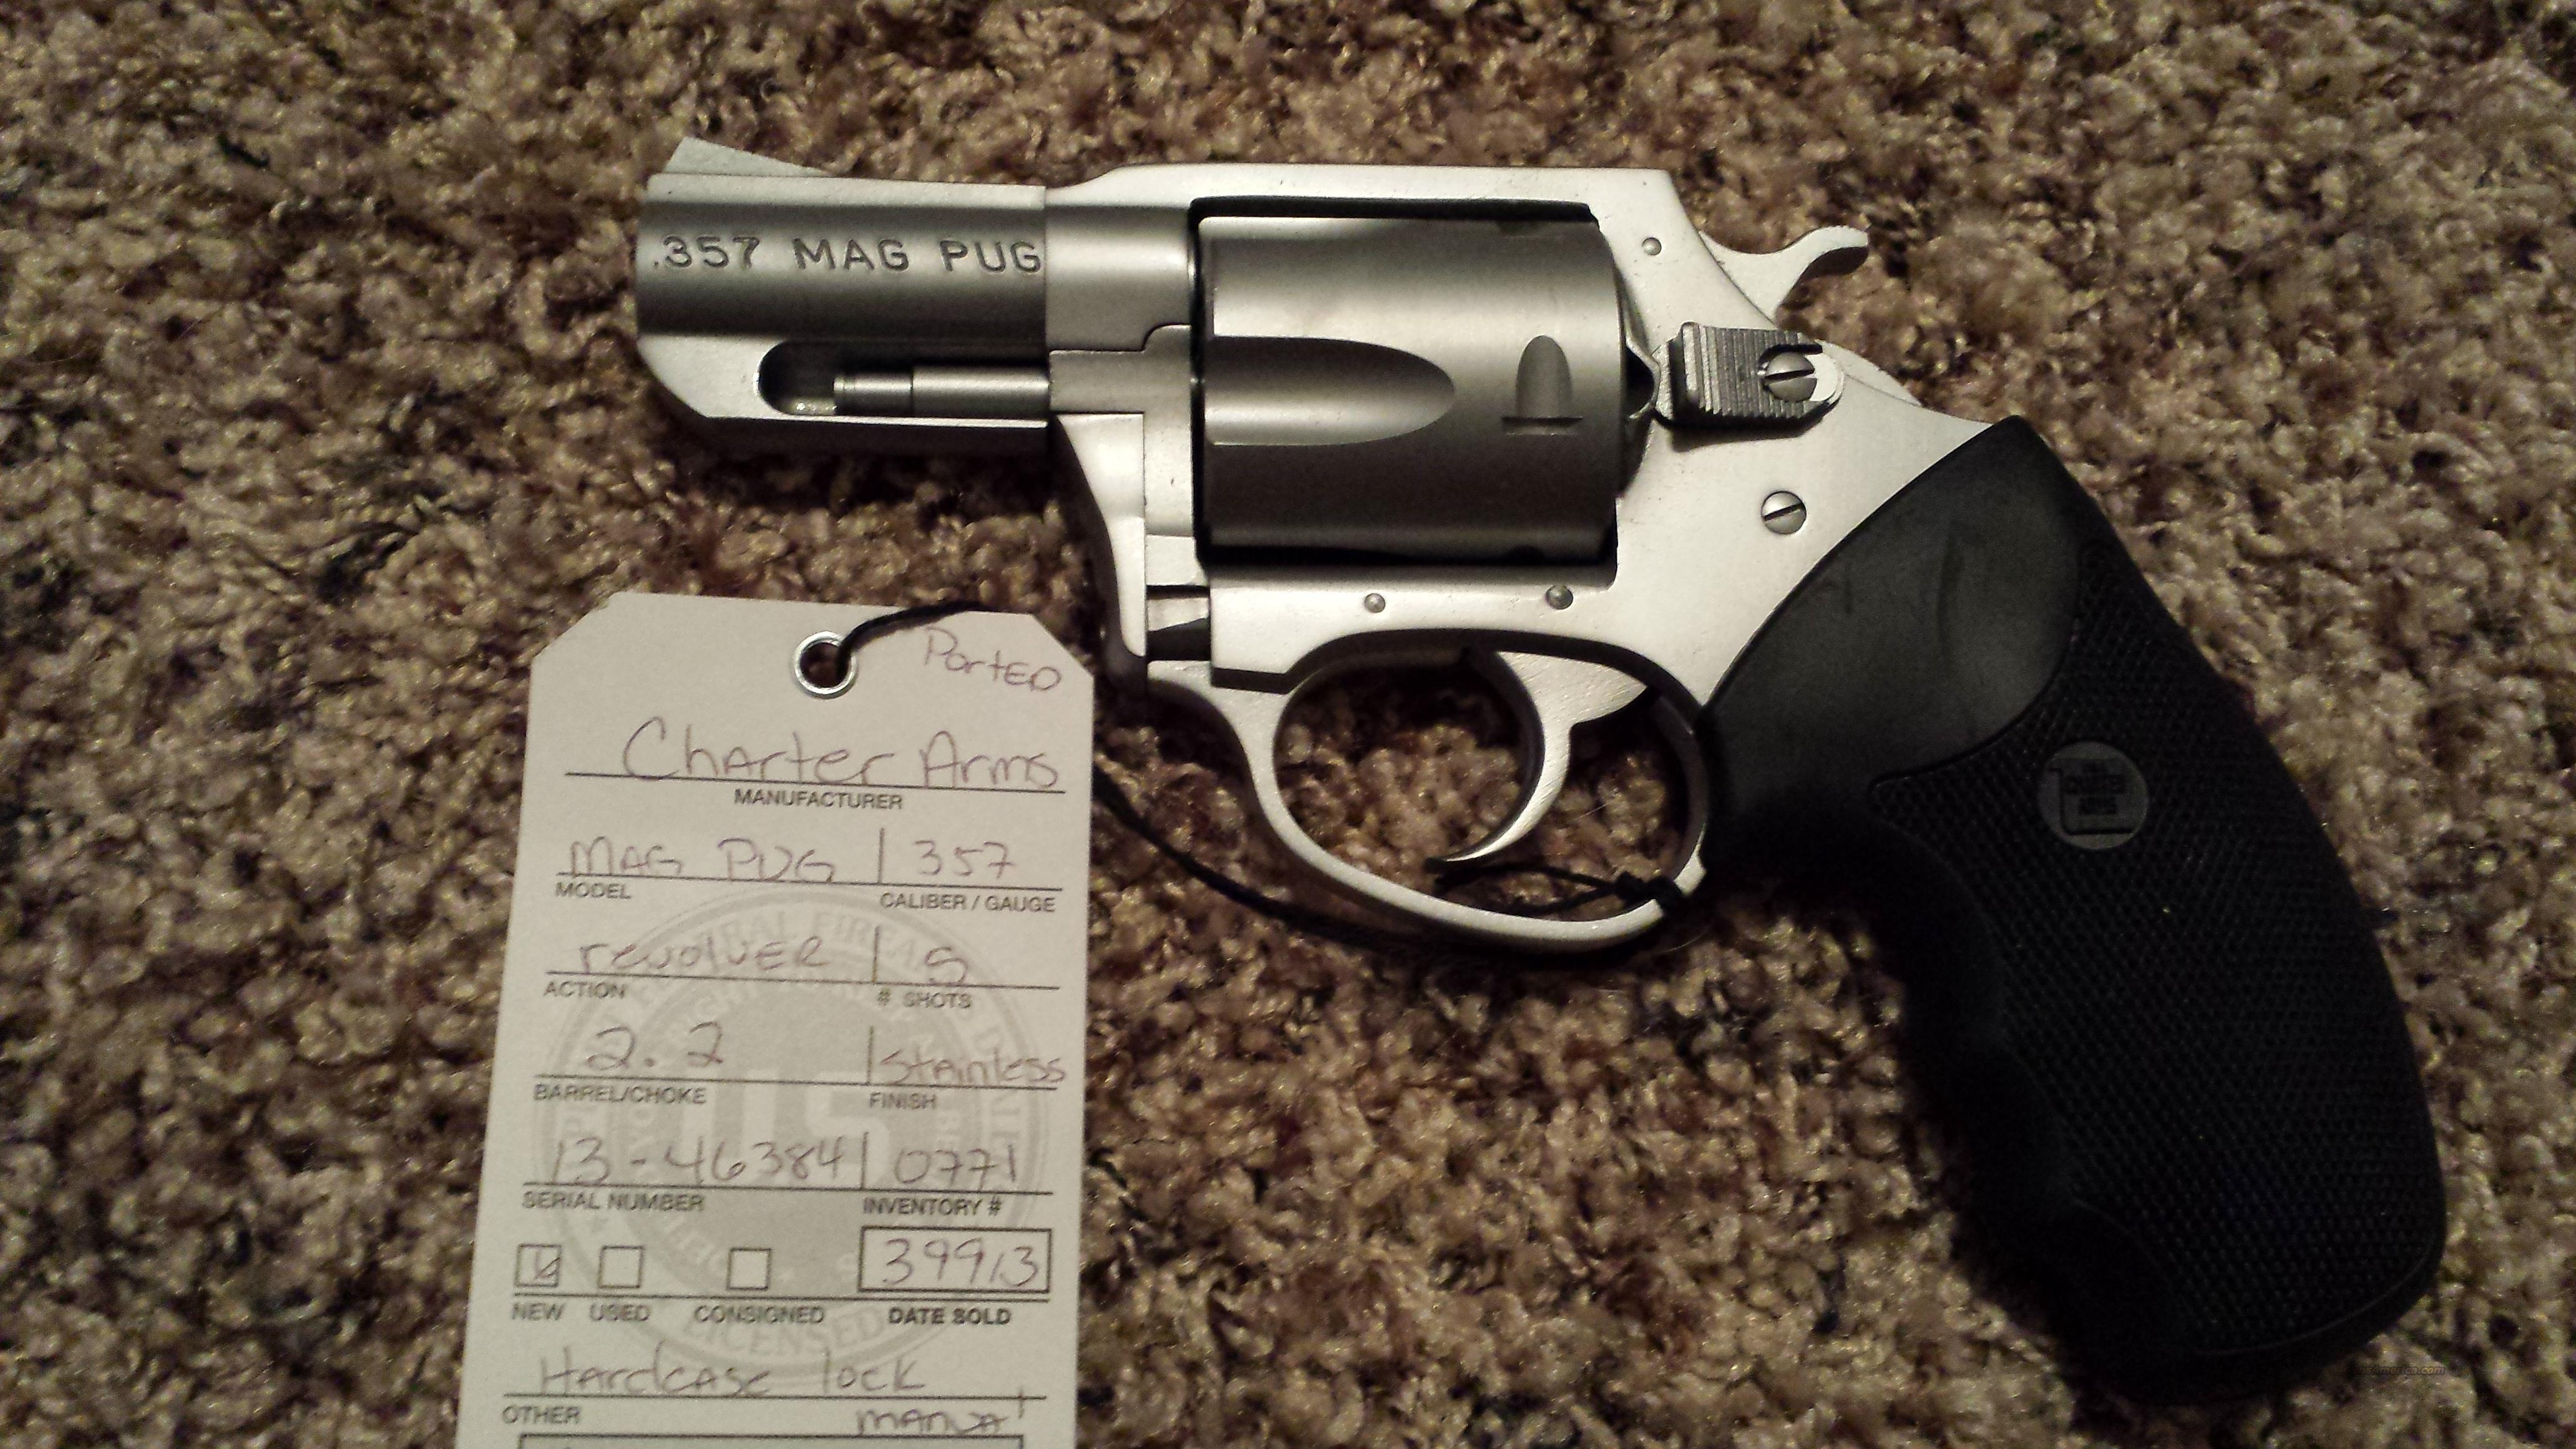 "CHARTER ARMS MAG PUG PORTED 357 MAG 2.2"" SS 5RD  Guns > Pistols > Charter Arms Revolvers"